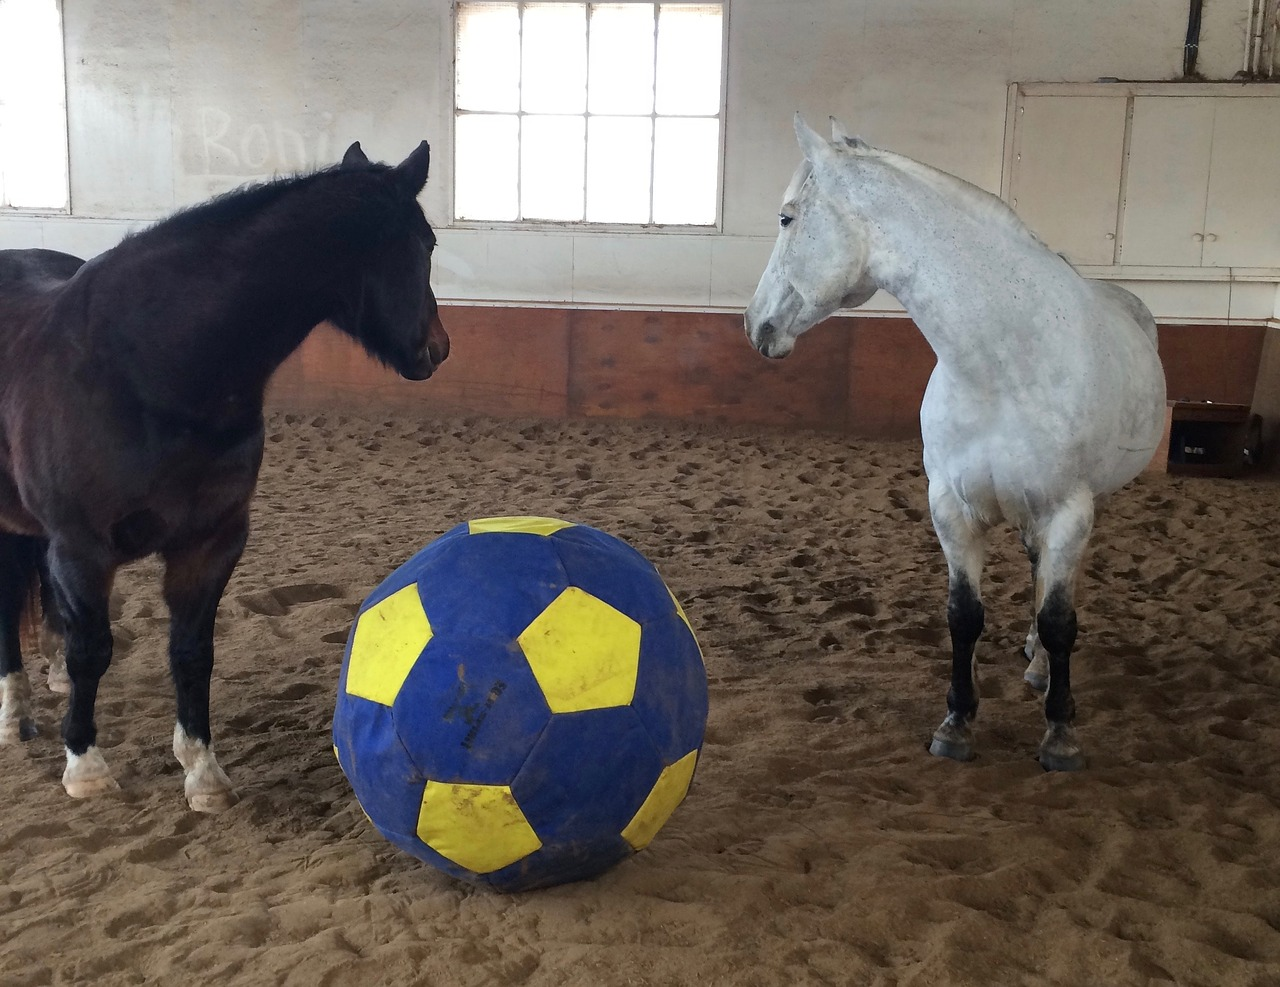 Horse,ball,playing,toy,teamwork - free image from needpix.com